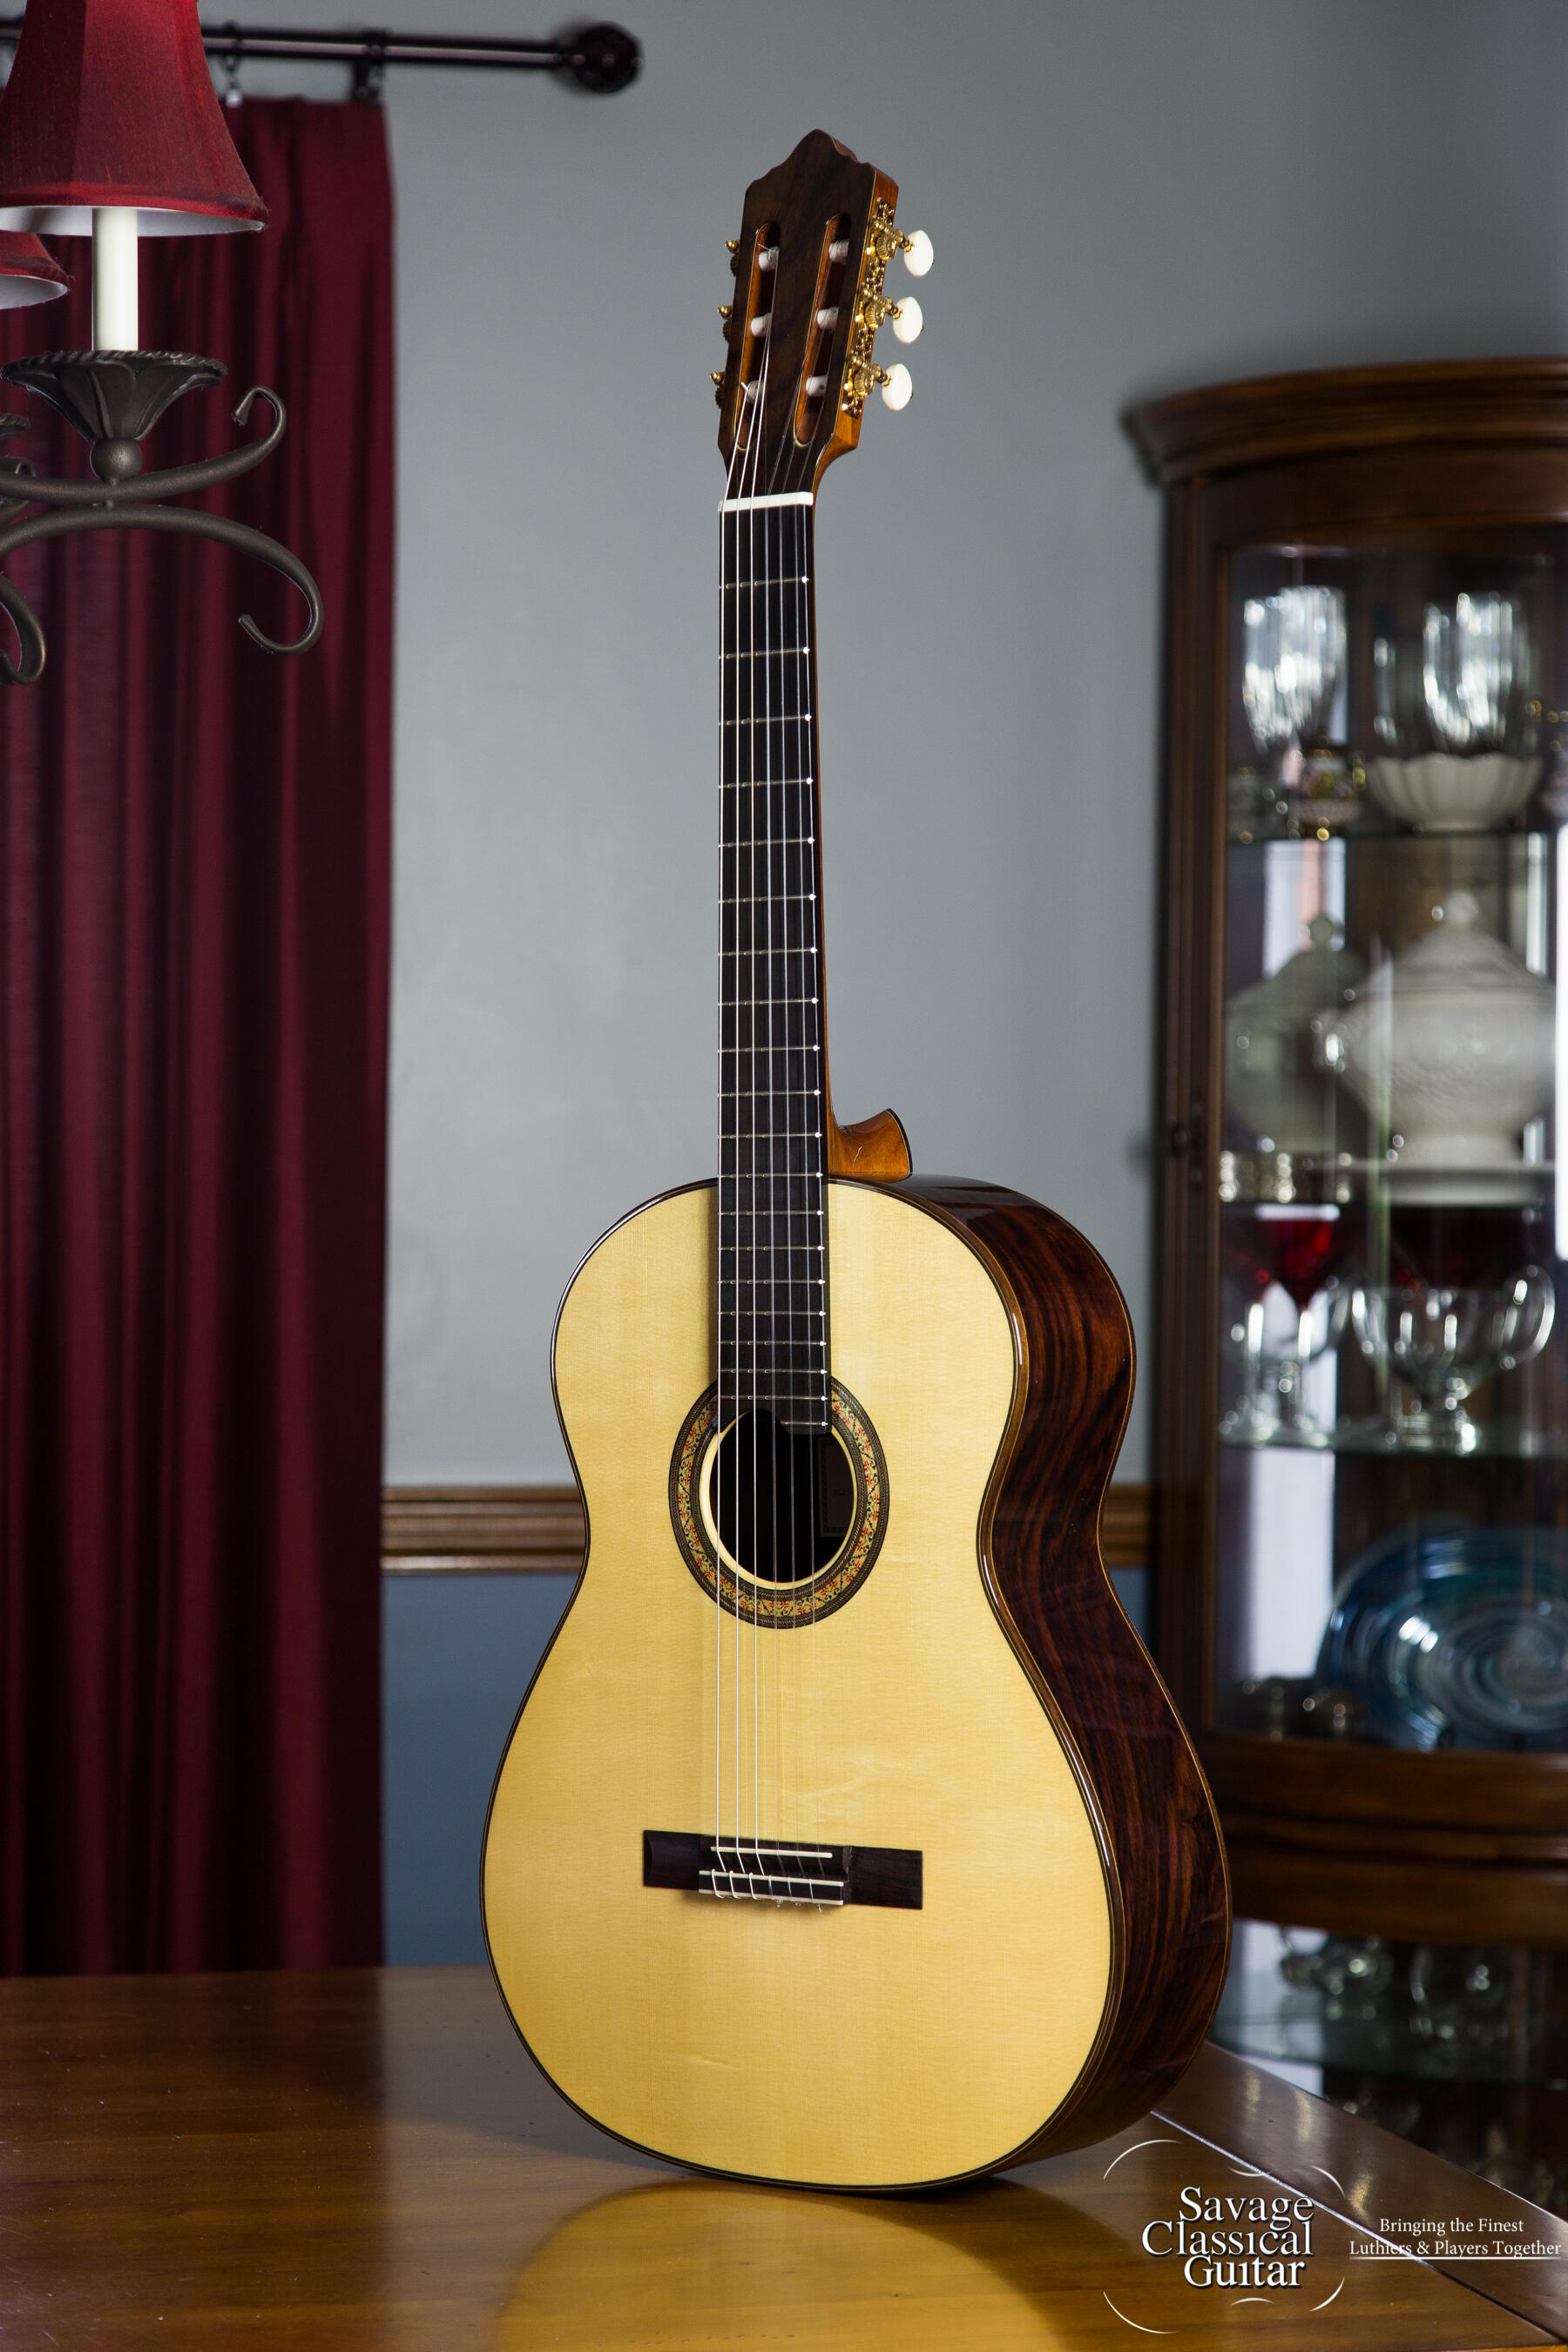 ashley sanders classical guitar for sale by savage classical guitar. Black Bedroom Furniture Sets. Home Design Ideas